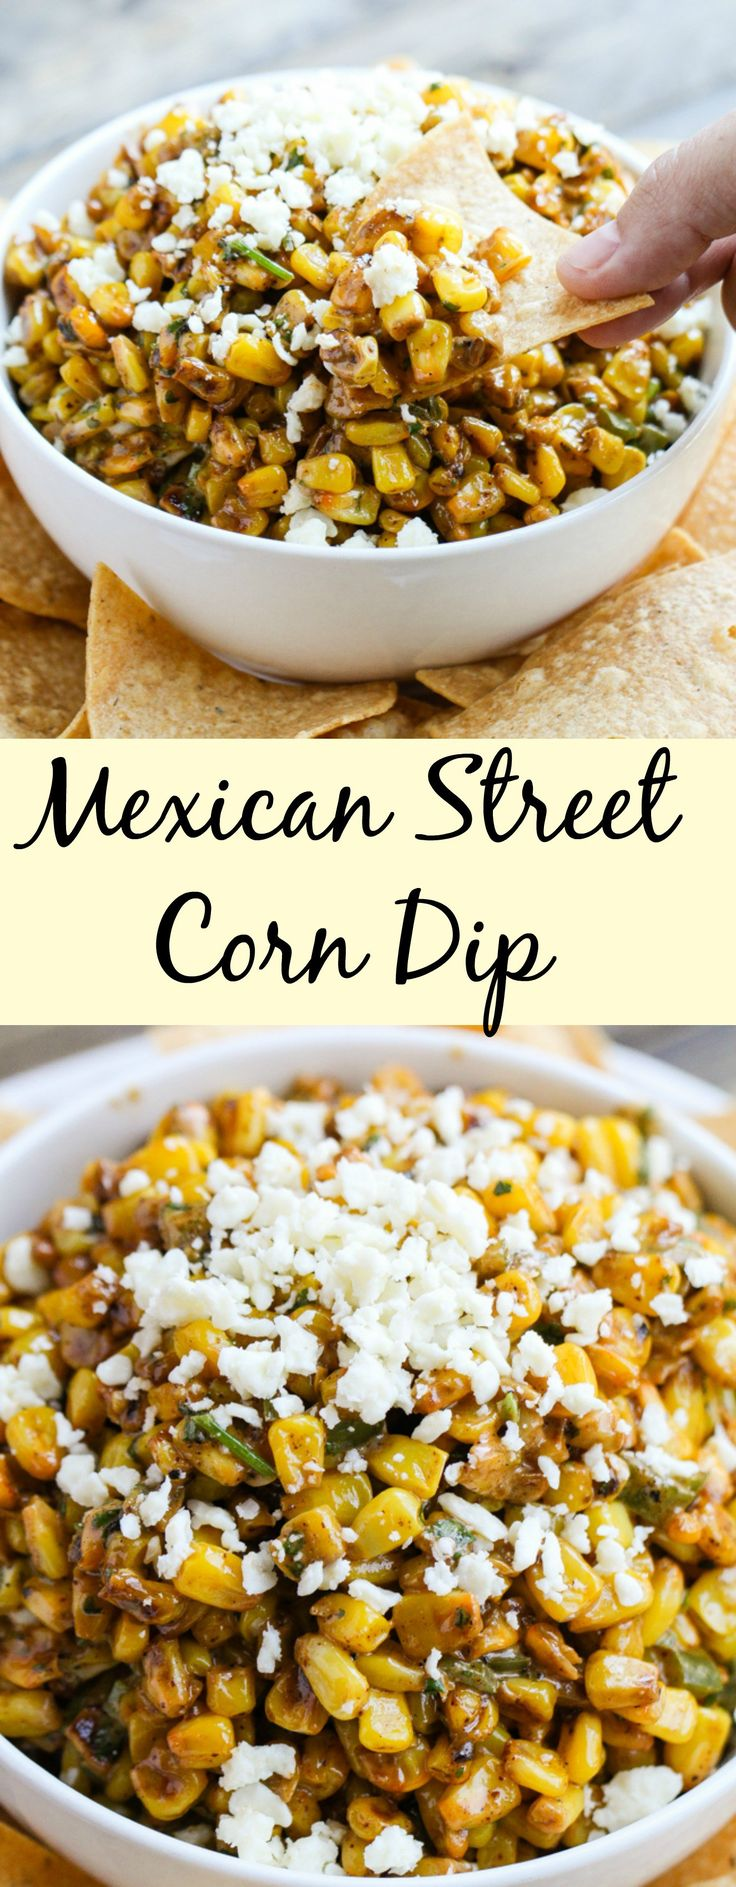 A simple Mexican street corn dip served with tortilla chips. It can be served and enjoyed warm or cold.